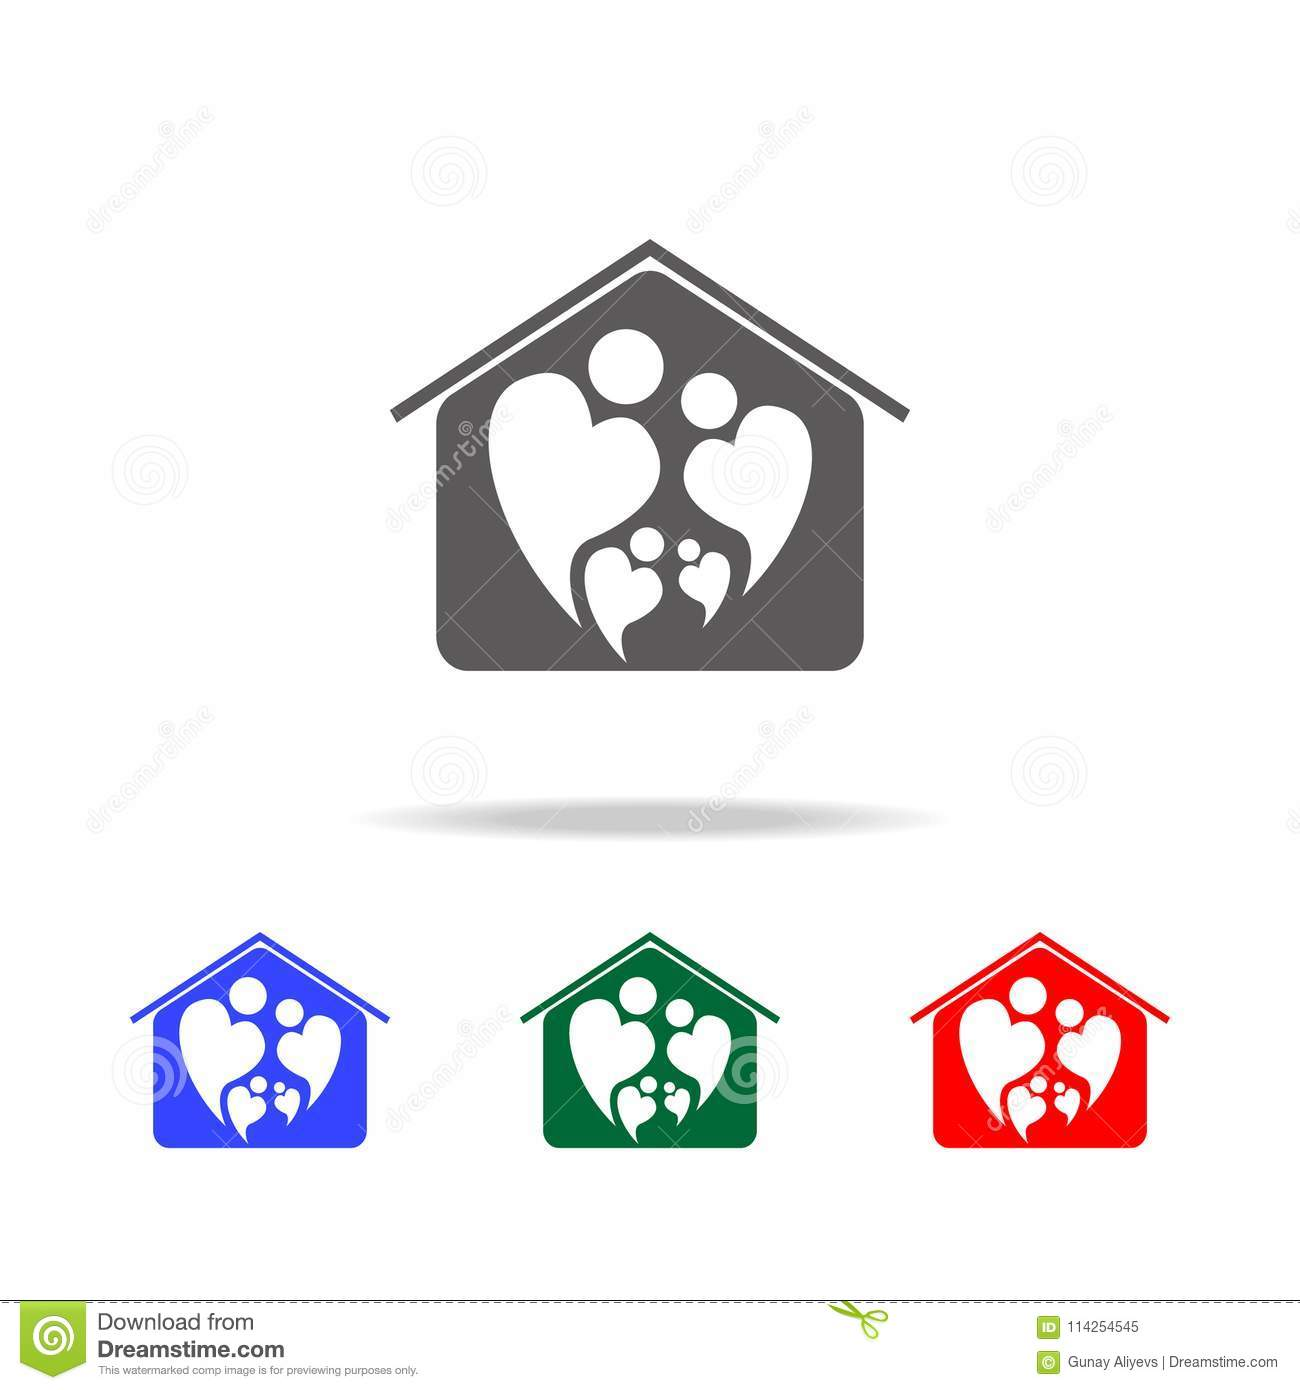 Logo Icon Of Two People In Love Forming Heart Symbol In Home Icon